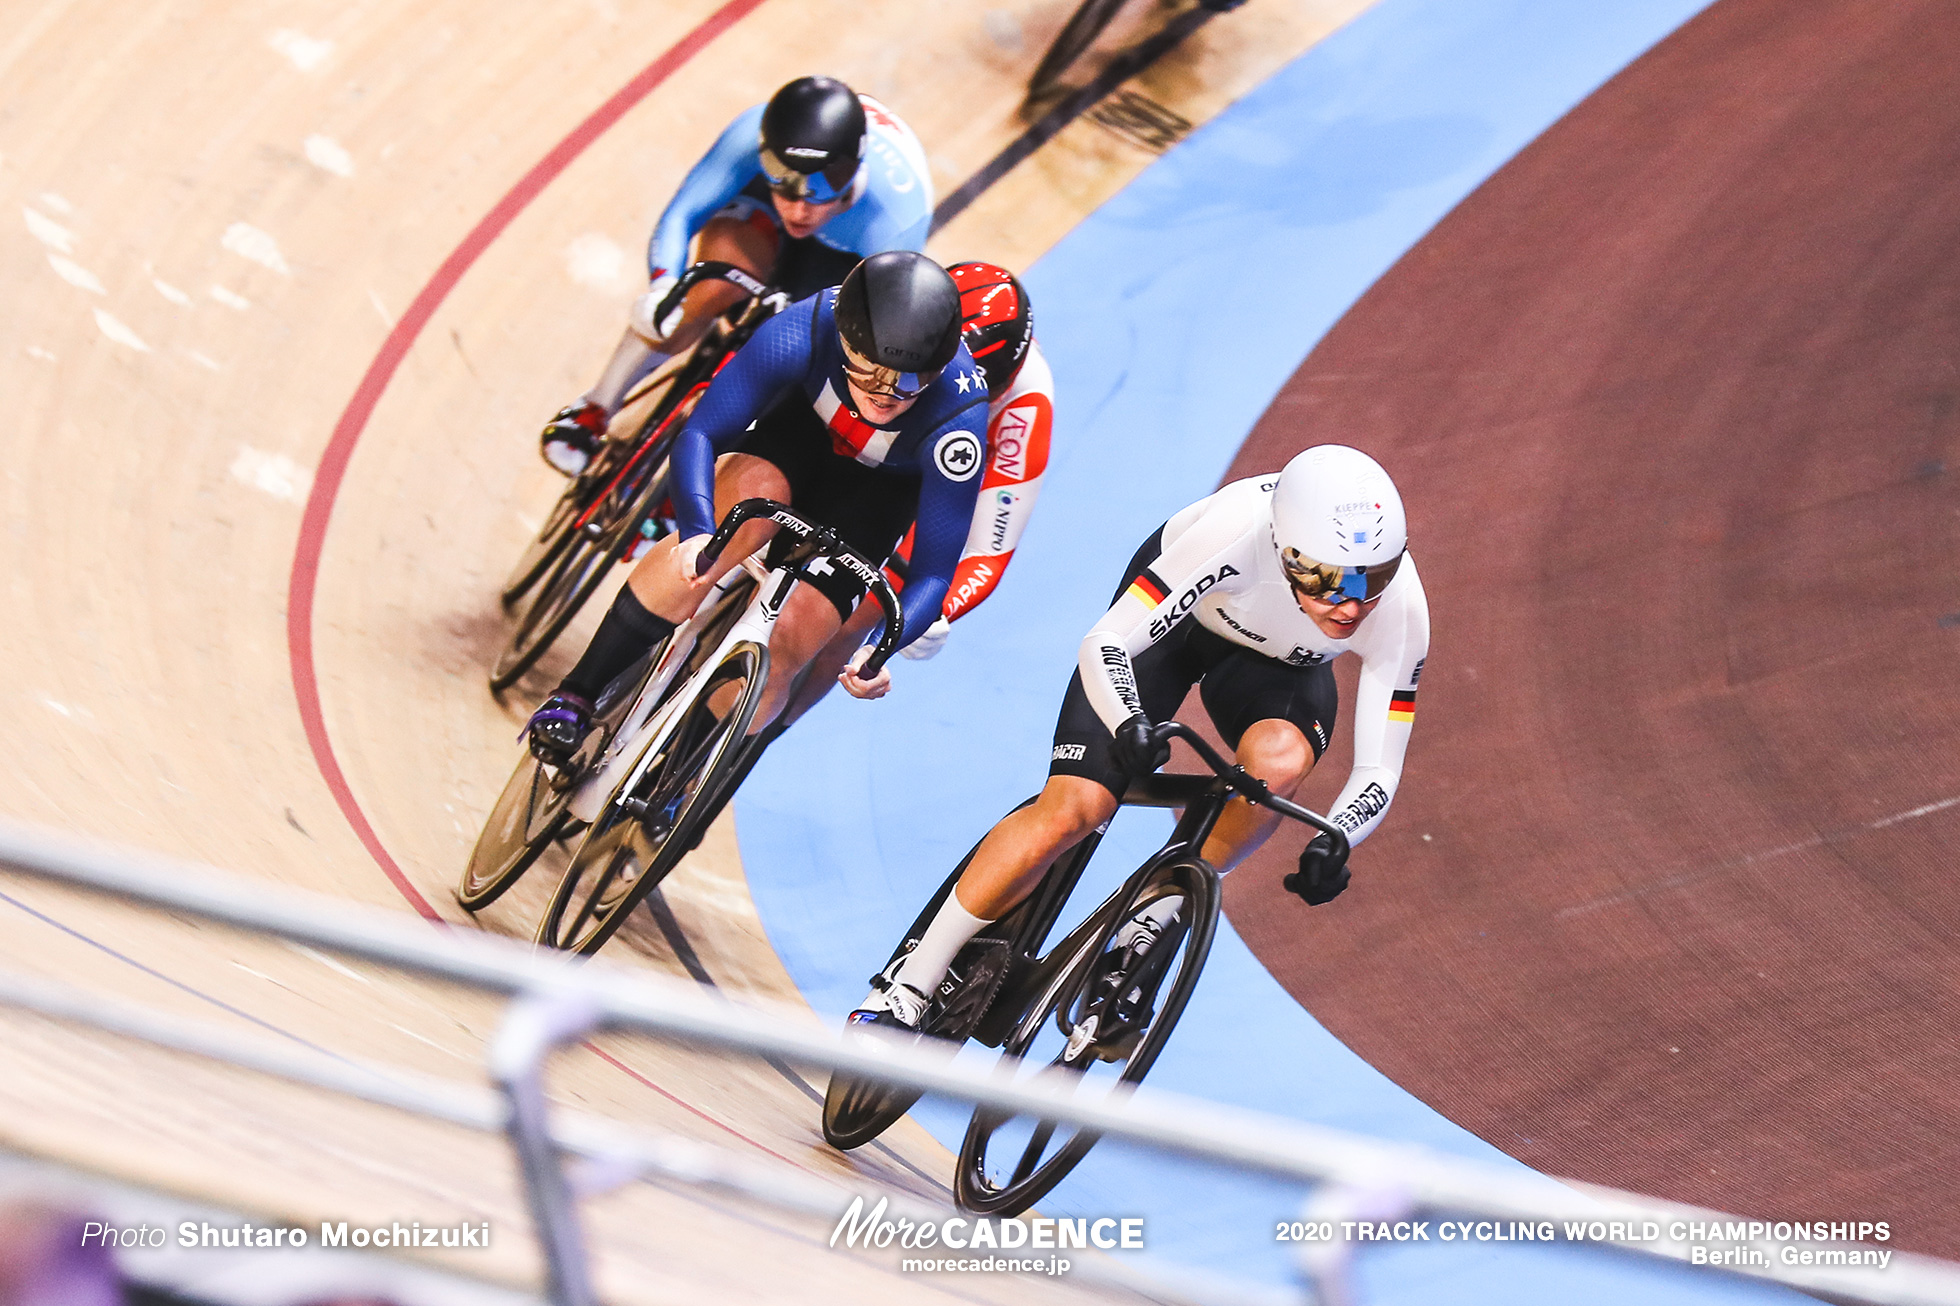 1st Round / Women's Keirin / 2020 Track Cycling World Championships